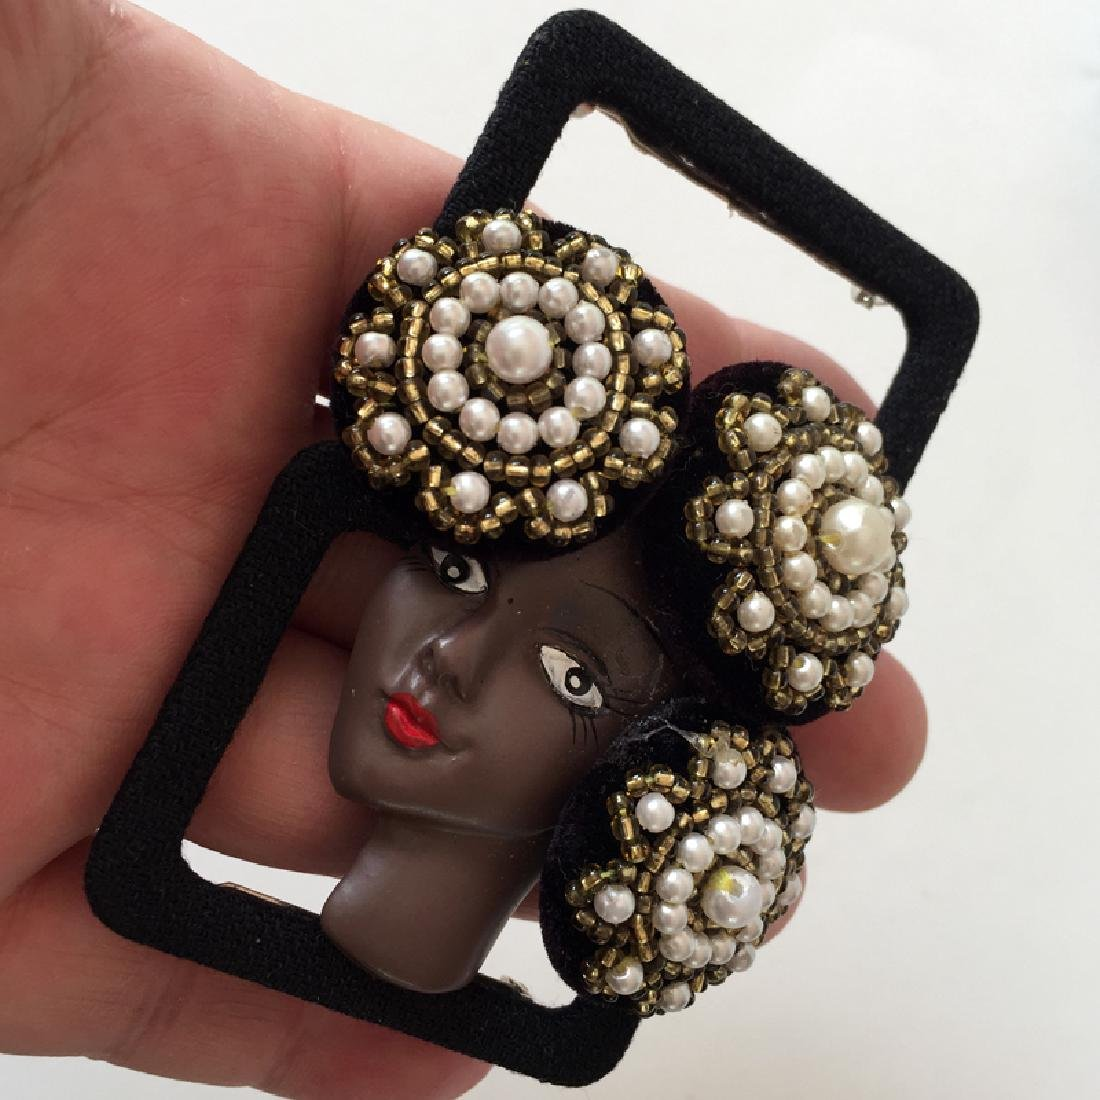 African -American woman face brooch in hat embellished